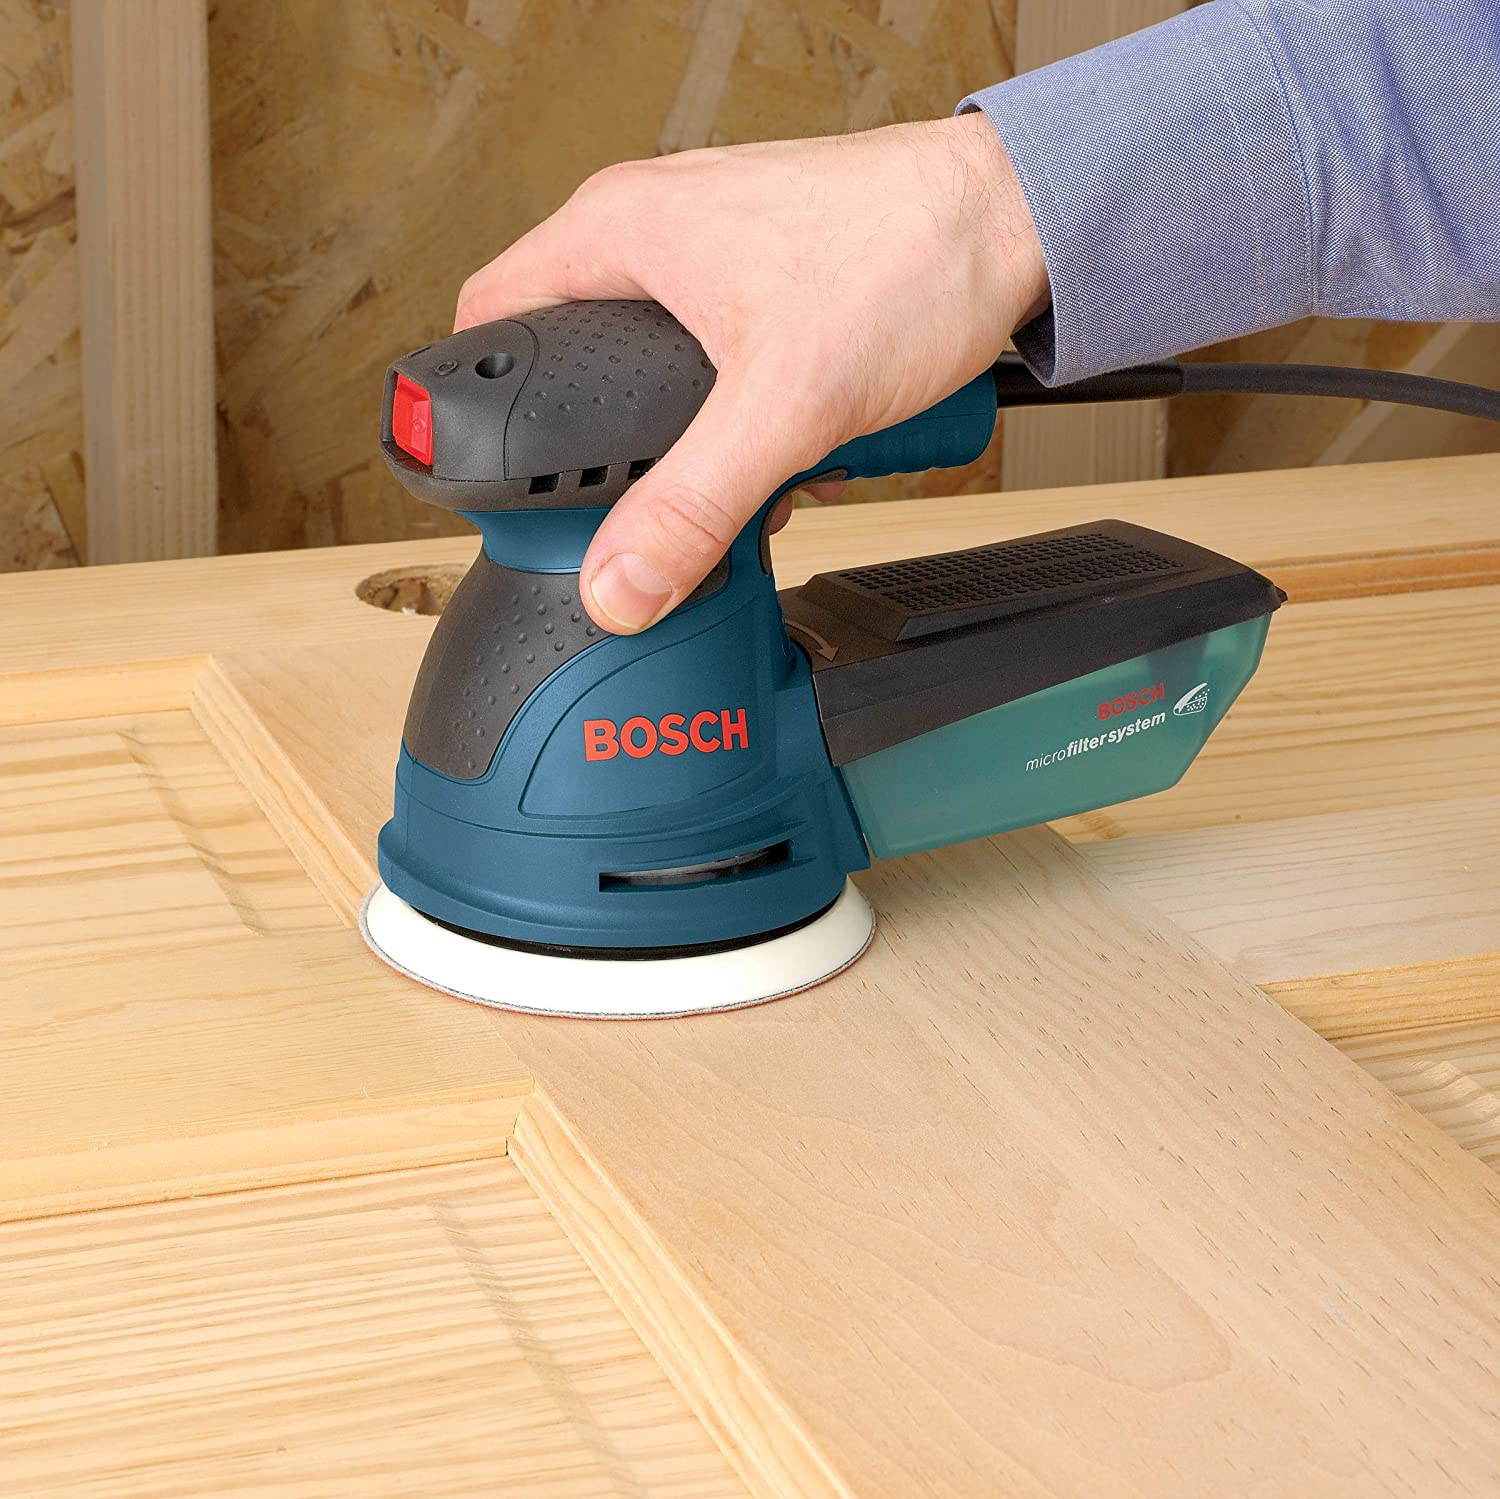 Bosch ROS20VSC featured image 5